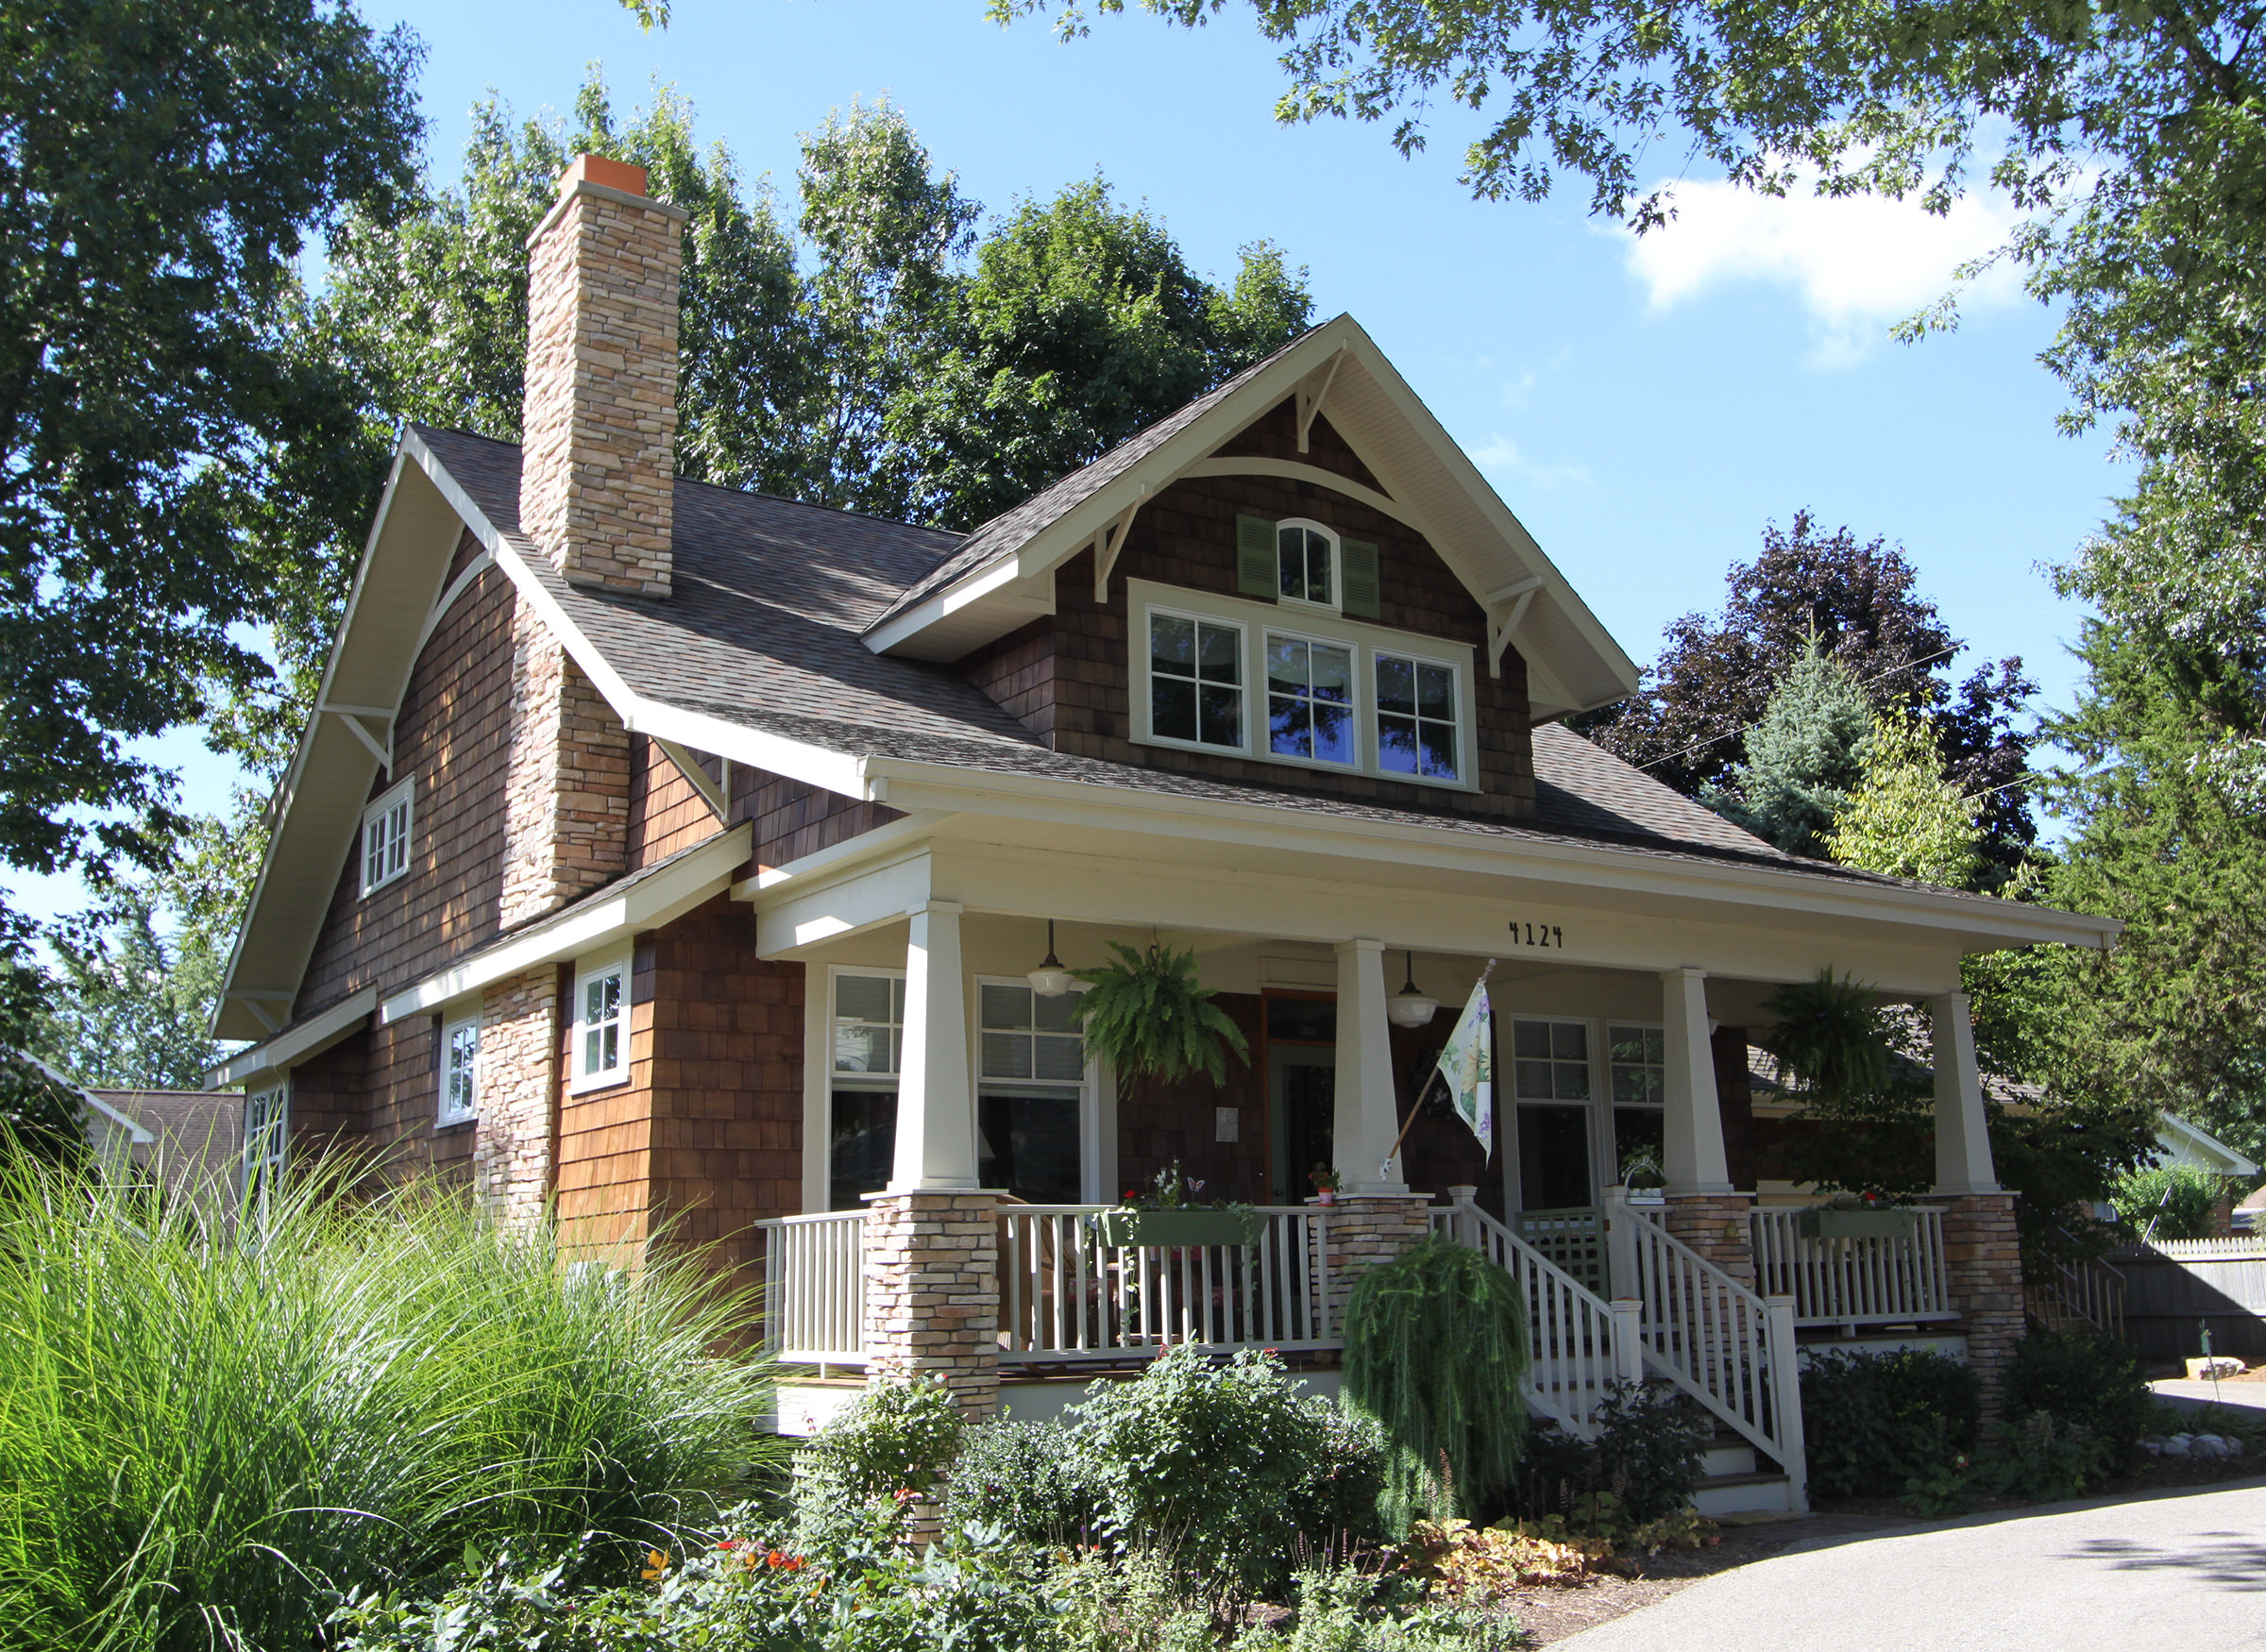 32 types of architectural styles for the home modern for Craftsman style architecture